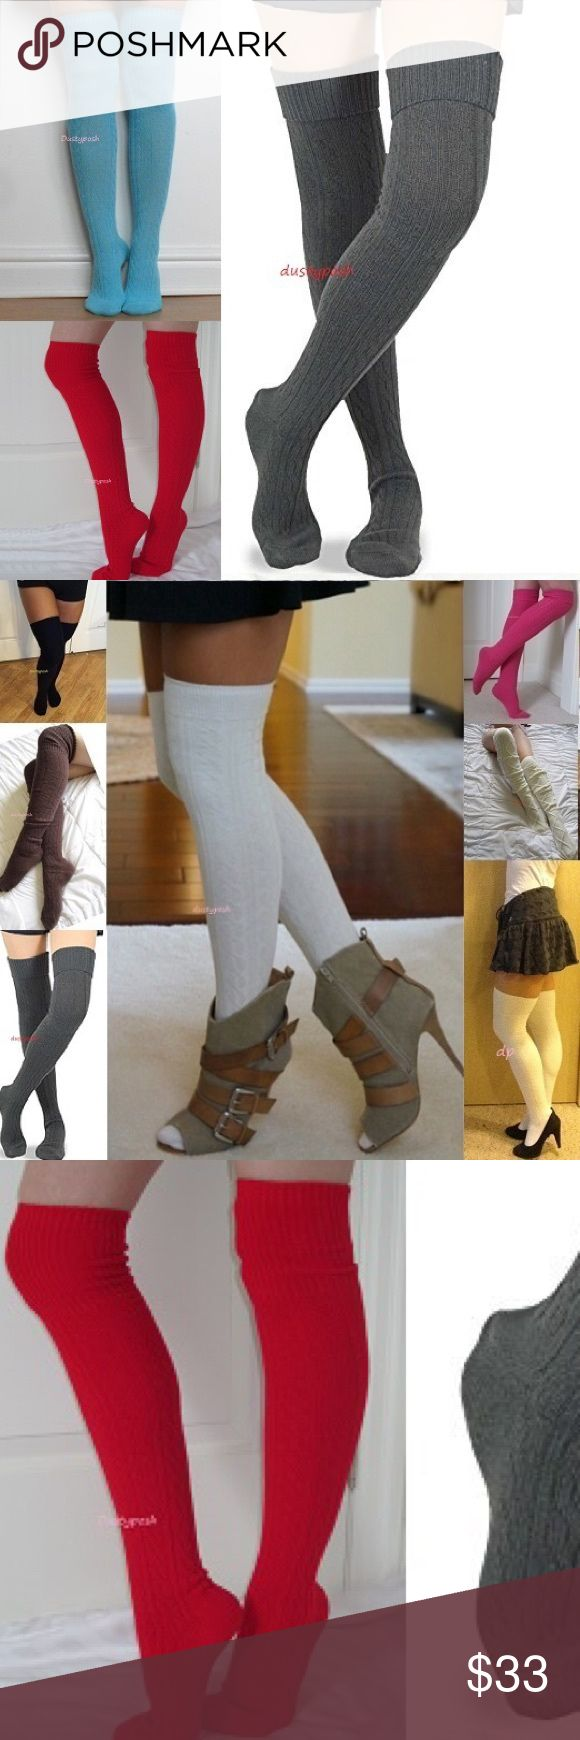 Cable Knit Over The Knee Sock Boot Cuff Thigh High Long soft cable knit over the knee socks. One pair new never worn, choose from ivory, black, hot pink, off white, brown, red or gray. Cute cozy boot socks, I'm sure you will love them. These are long enough to wear thigh high for most or over the knee with a nice cuff. Push them down below your knees and rock them as scrunchy knee highs. Surely to keep your tootsies warm, normal too thick socks thickness, not like cheap thin so called over…